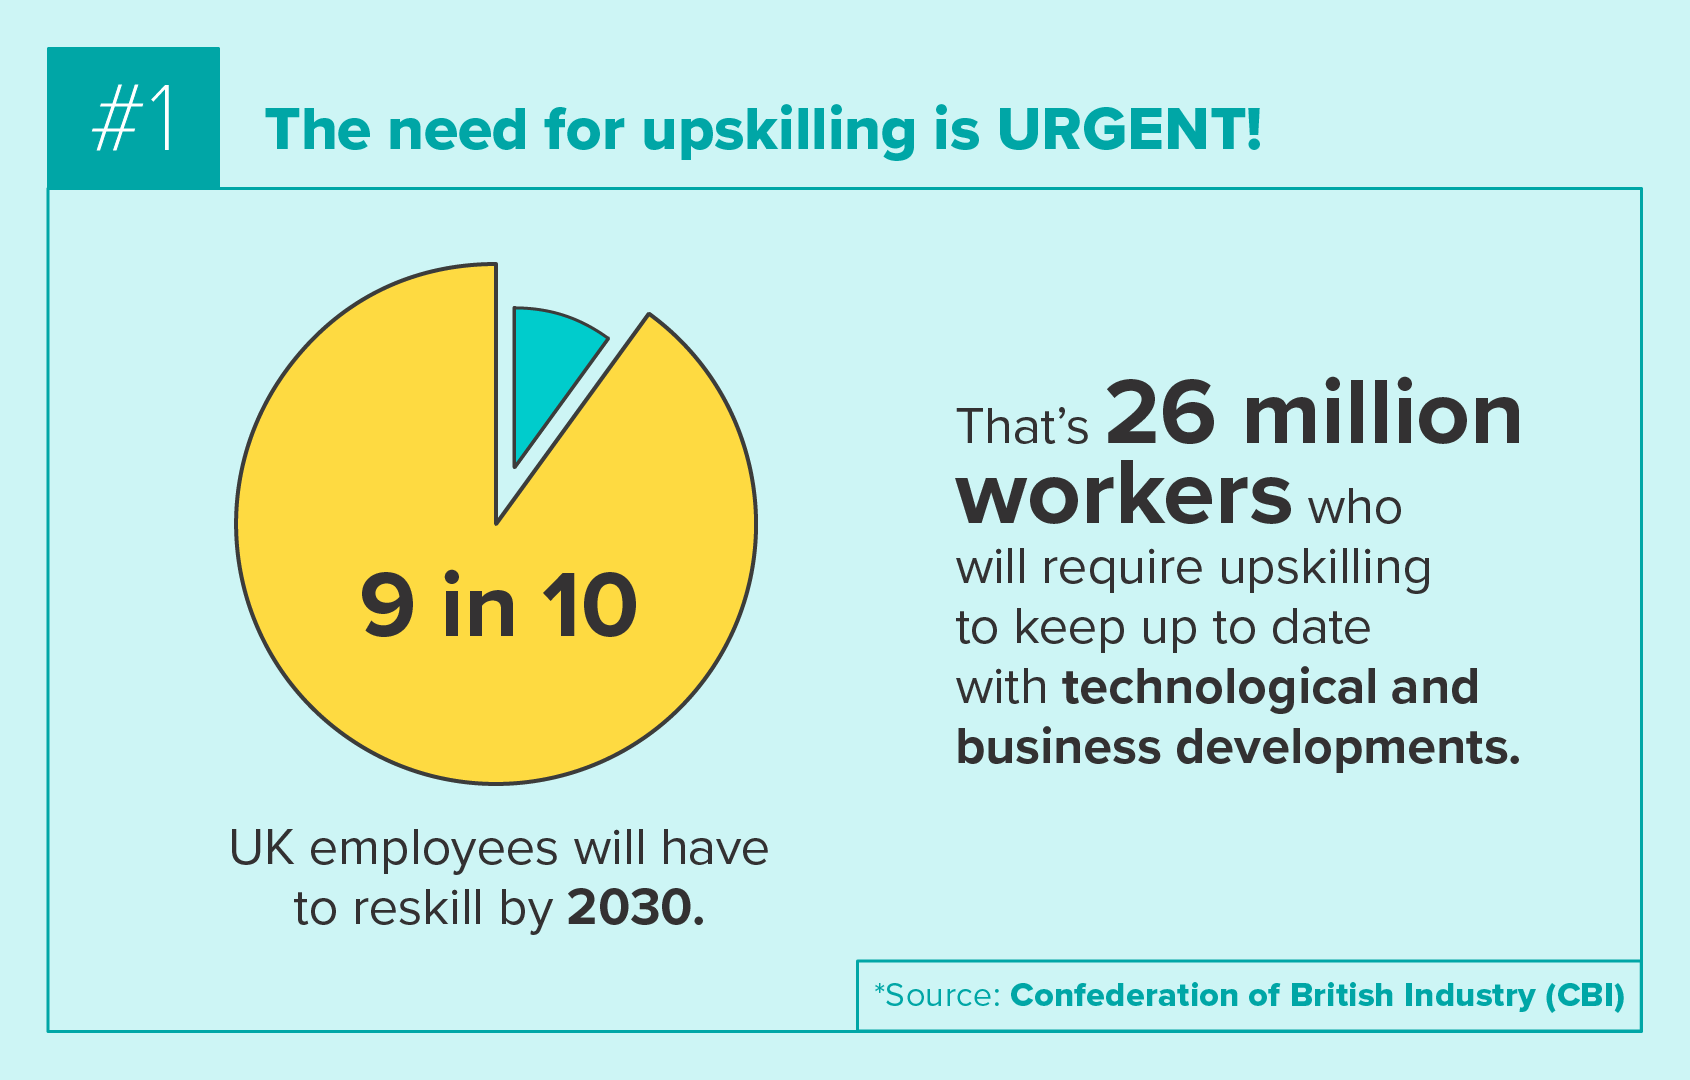 The need for upskilling is urgent